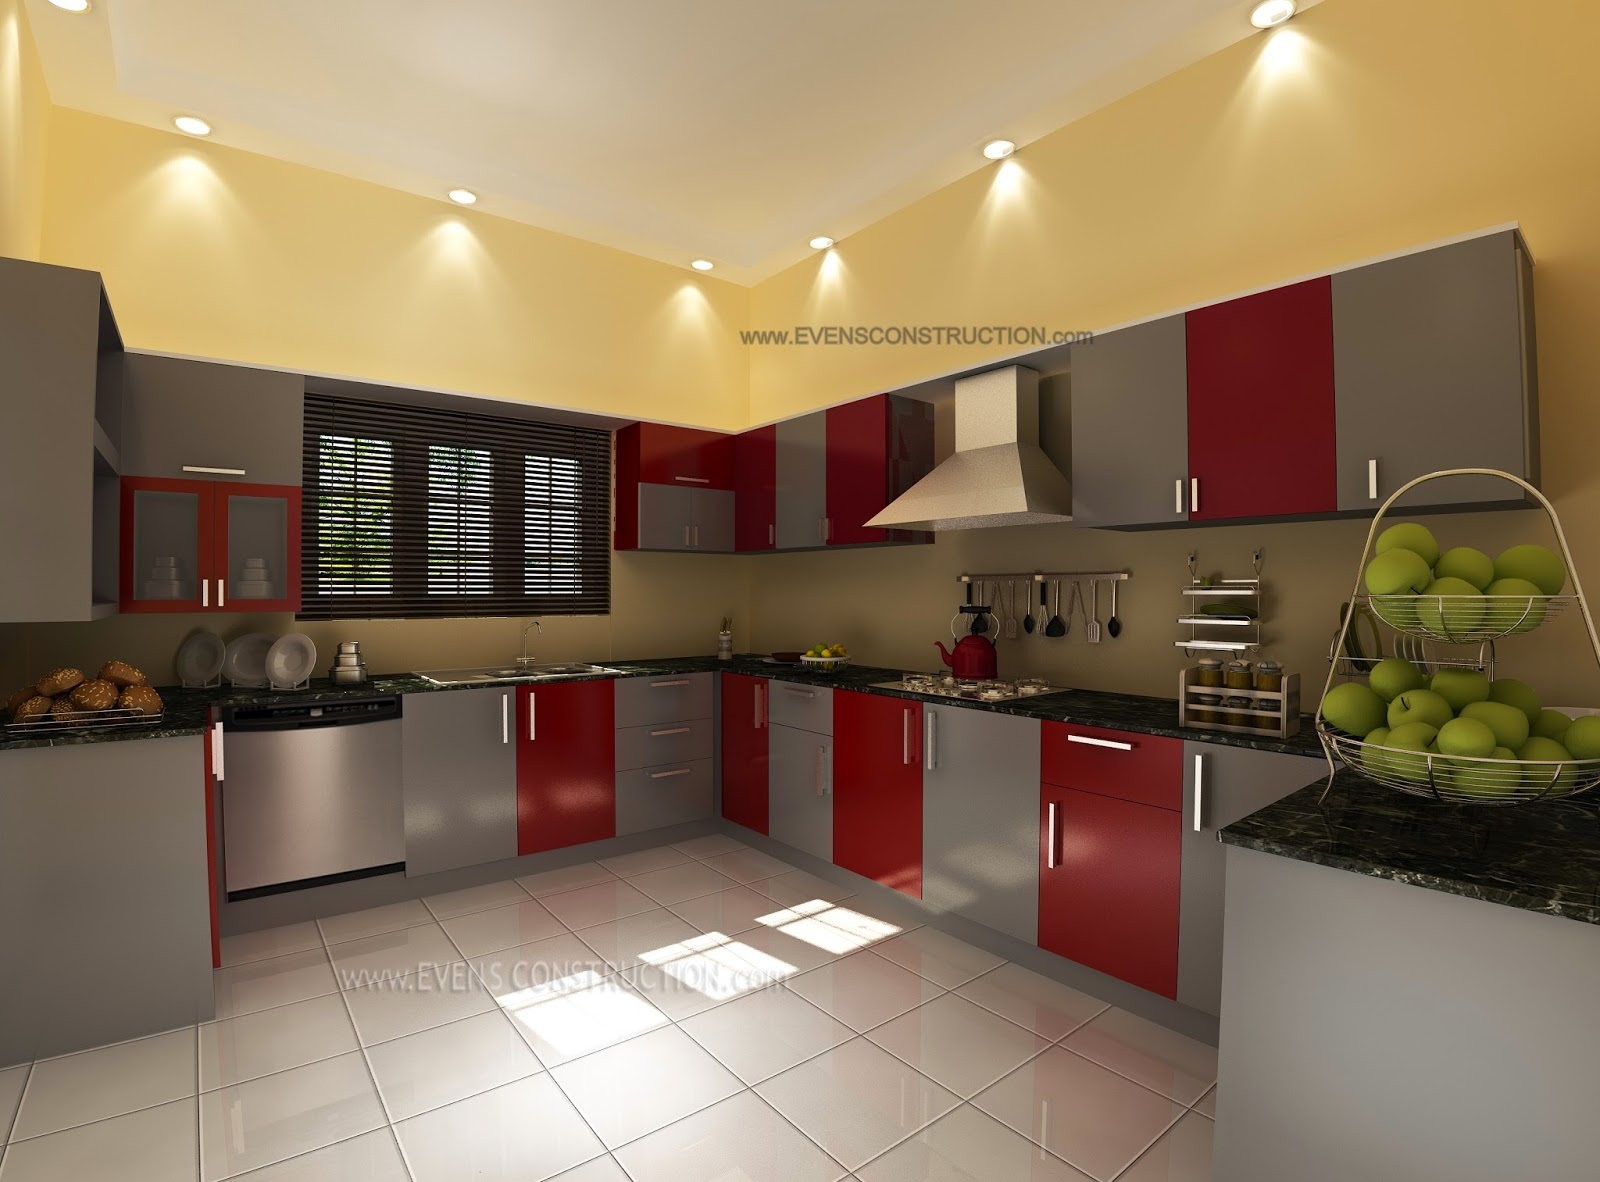 Charmant Simple And Cute Kerala Kitchen Interior Design